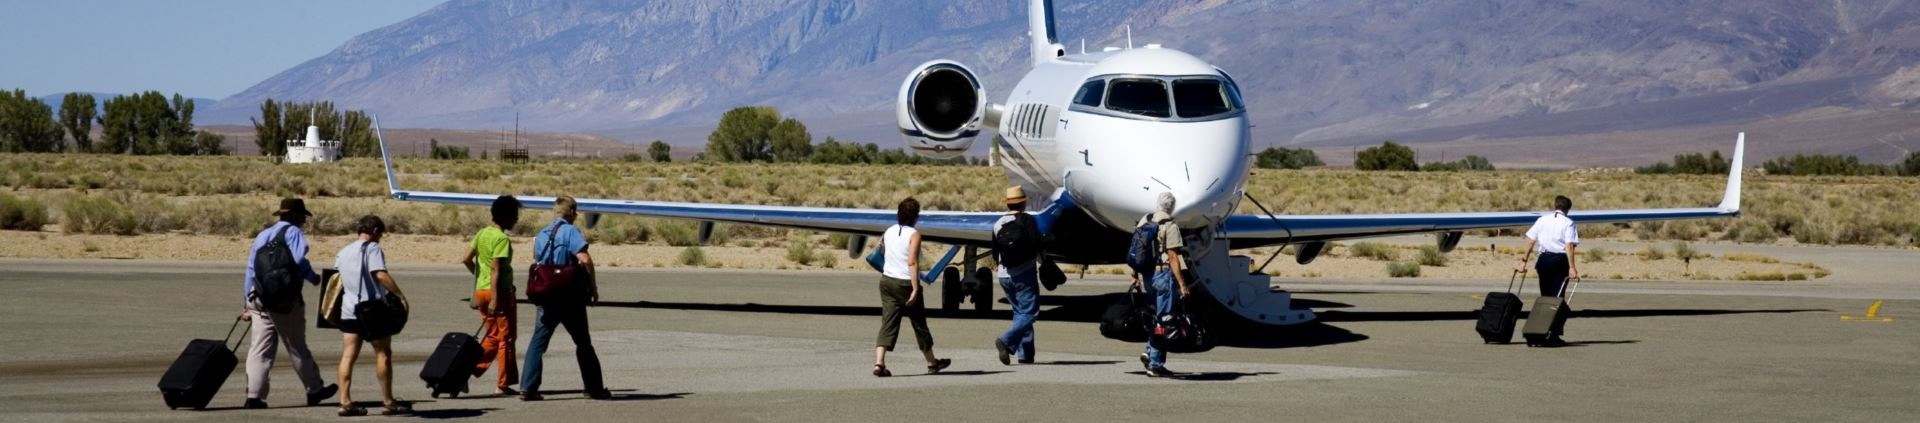 Group boarding plane cropped2.jpg